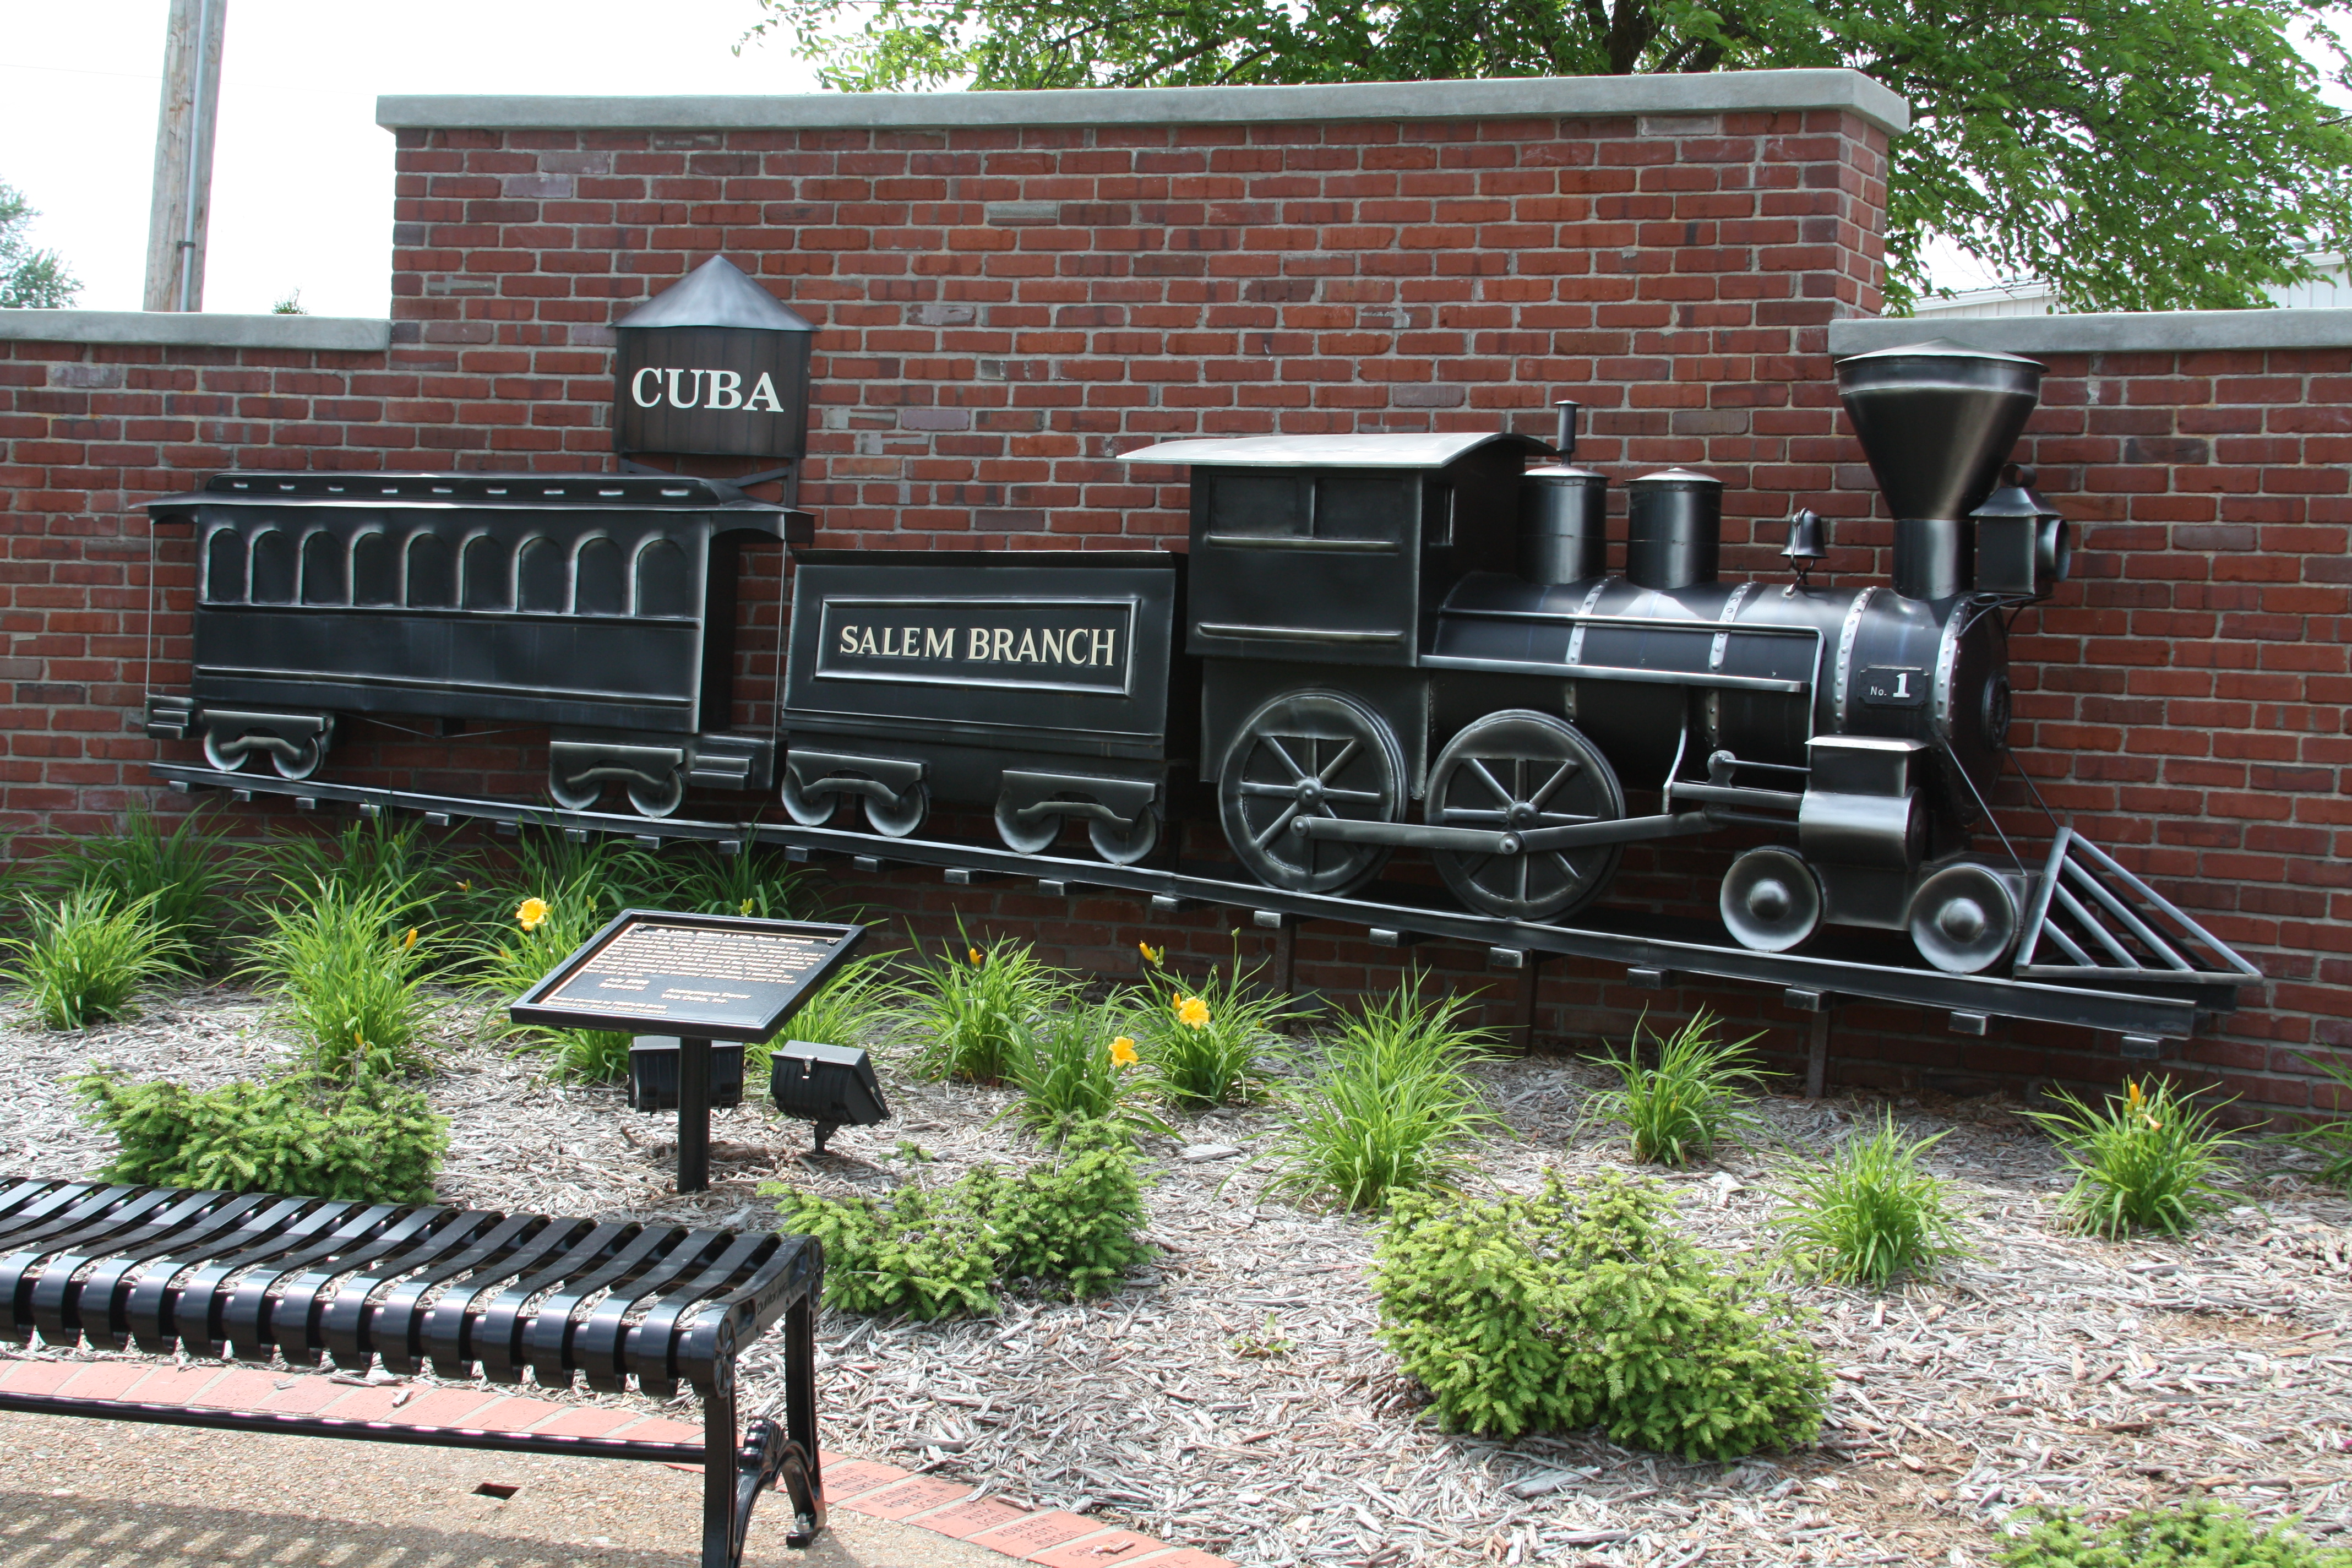 1873 train replica Cuba, Missouri